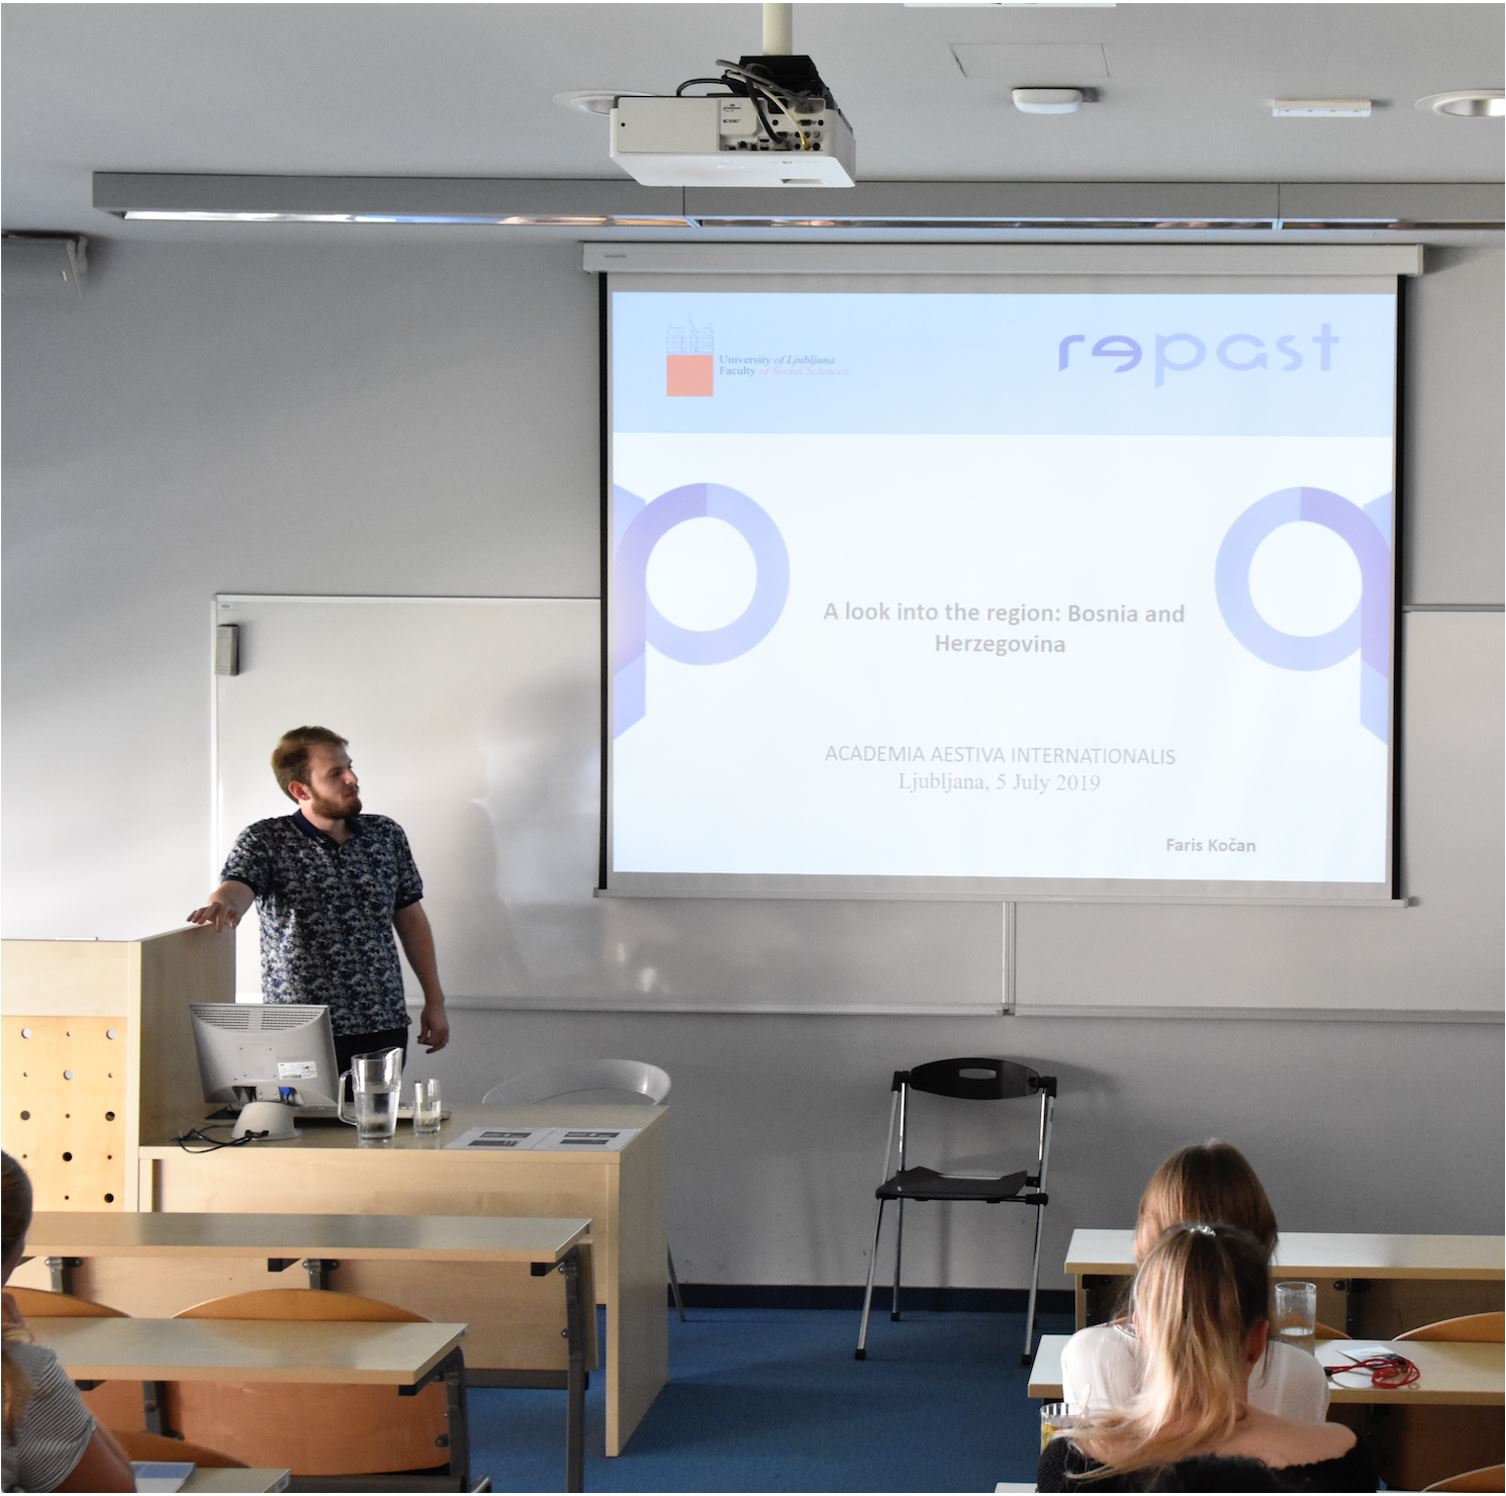 Faris Kočanan participated as an invited speaker at Academia Aestiva Internationalis